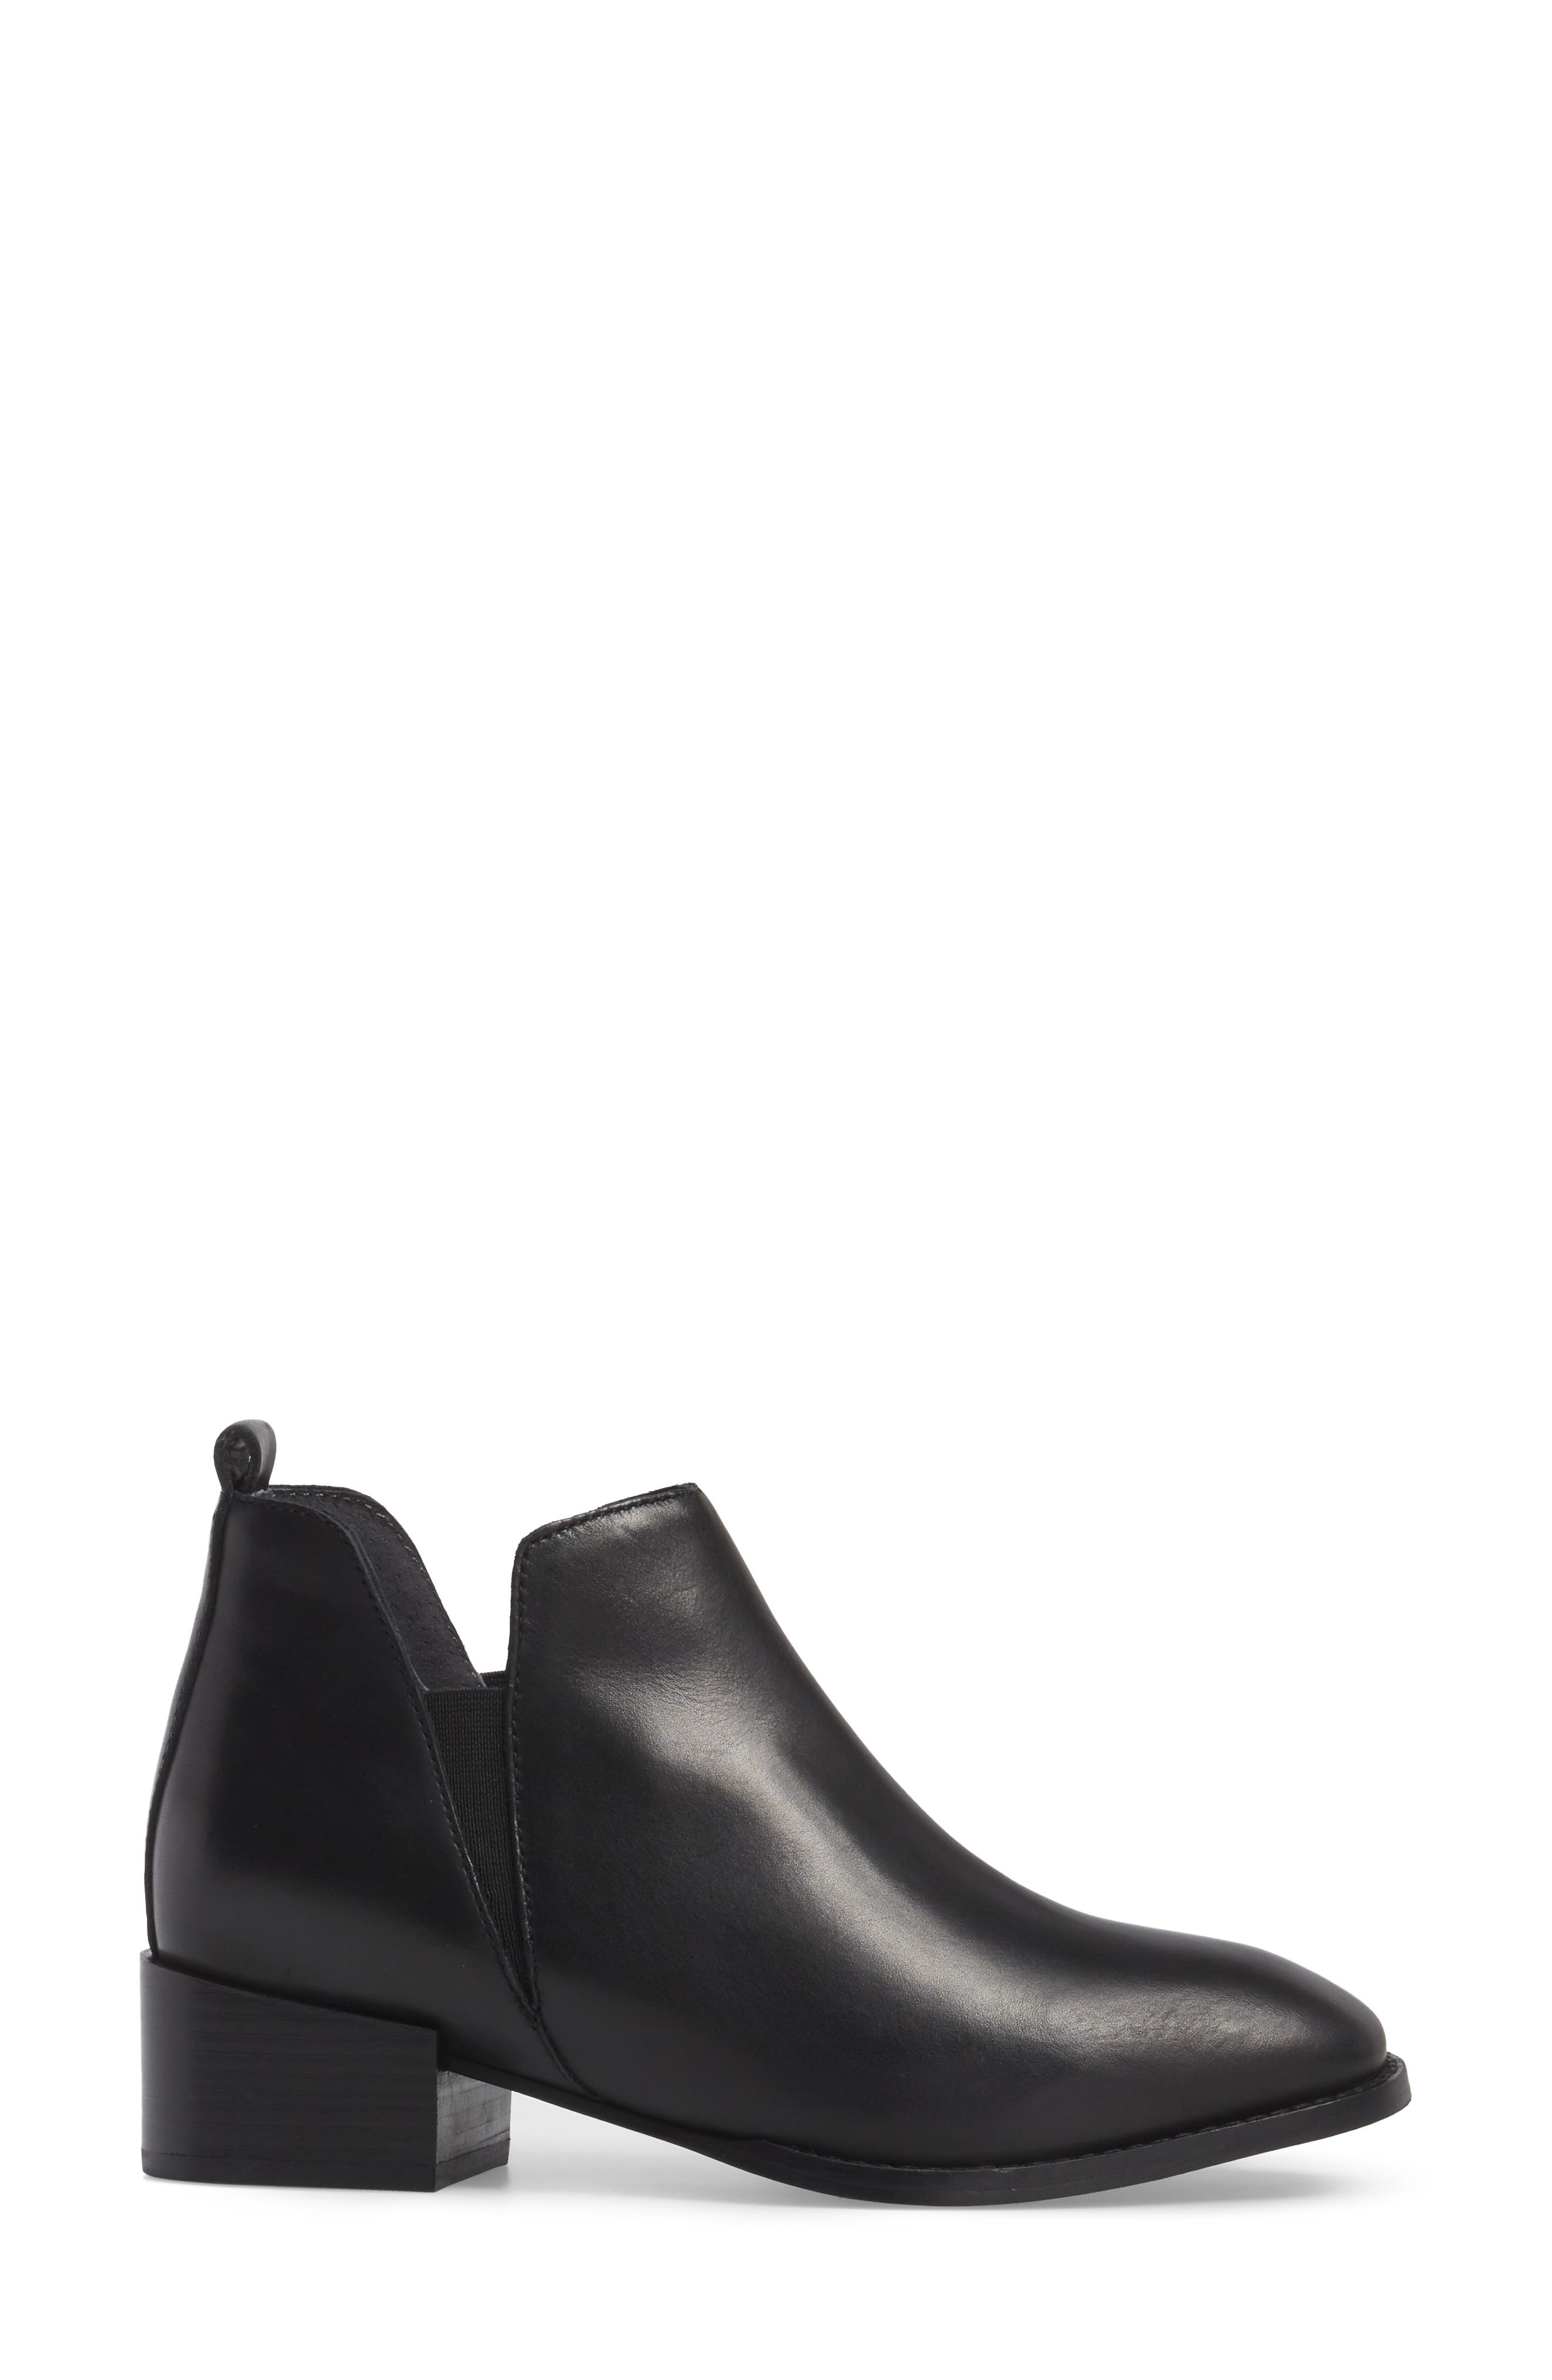 Offstage Boot,                             Alternate thumbnail 3, color,                             BLACK LEATHER